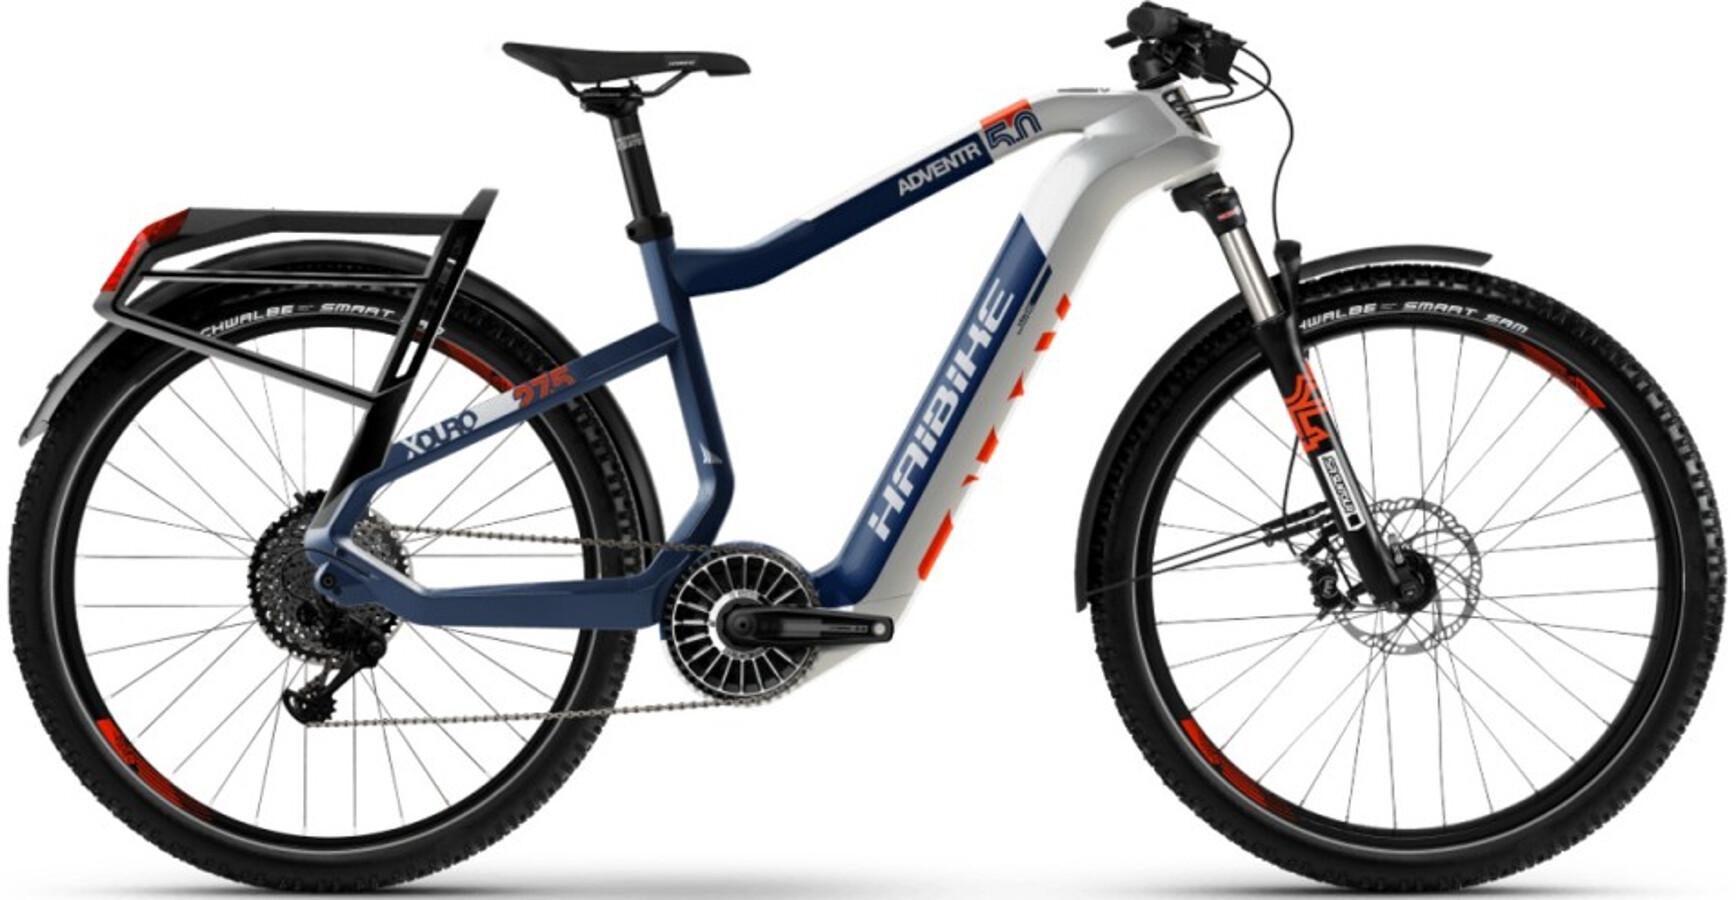 HAIBIKE XDURO Adventr 5.0, white/blue/orange (2020) | City